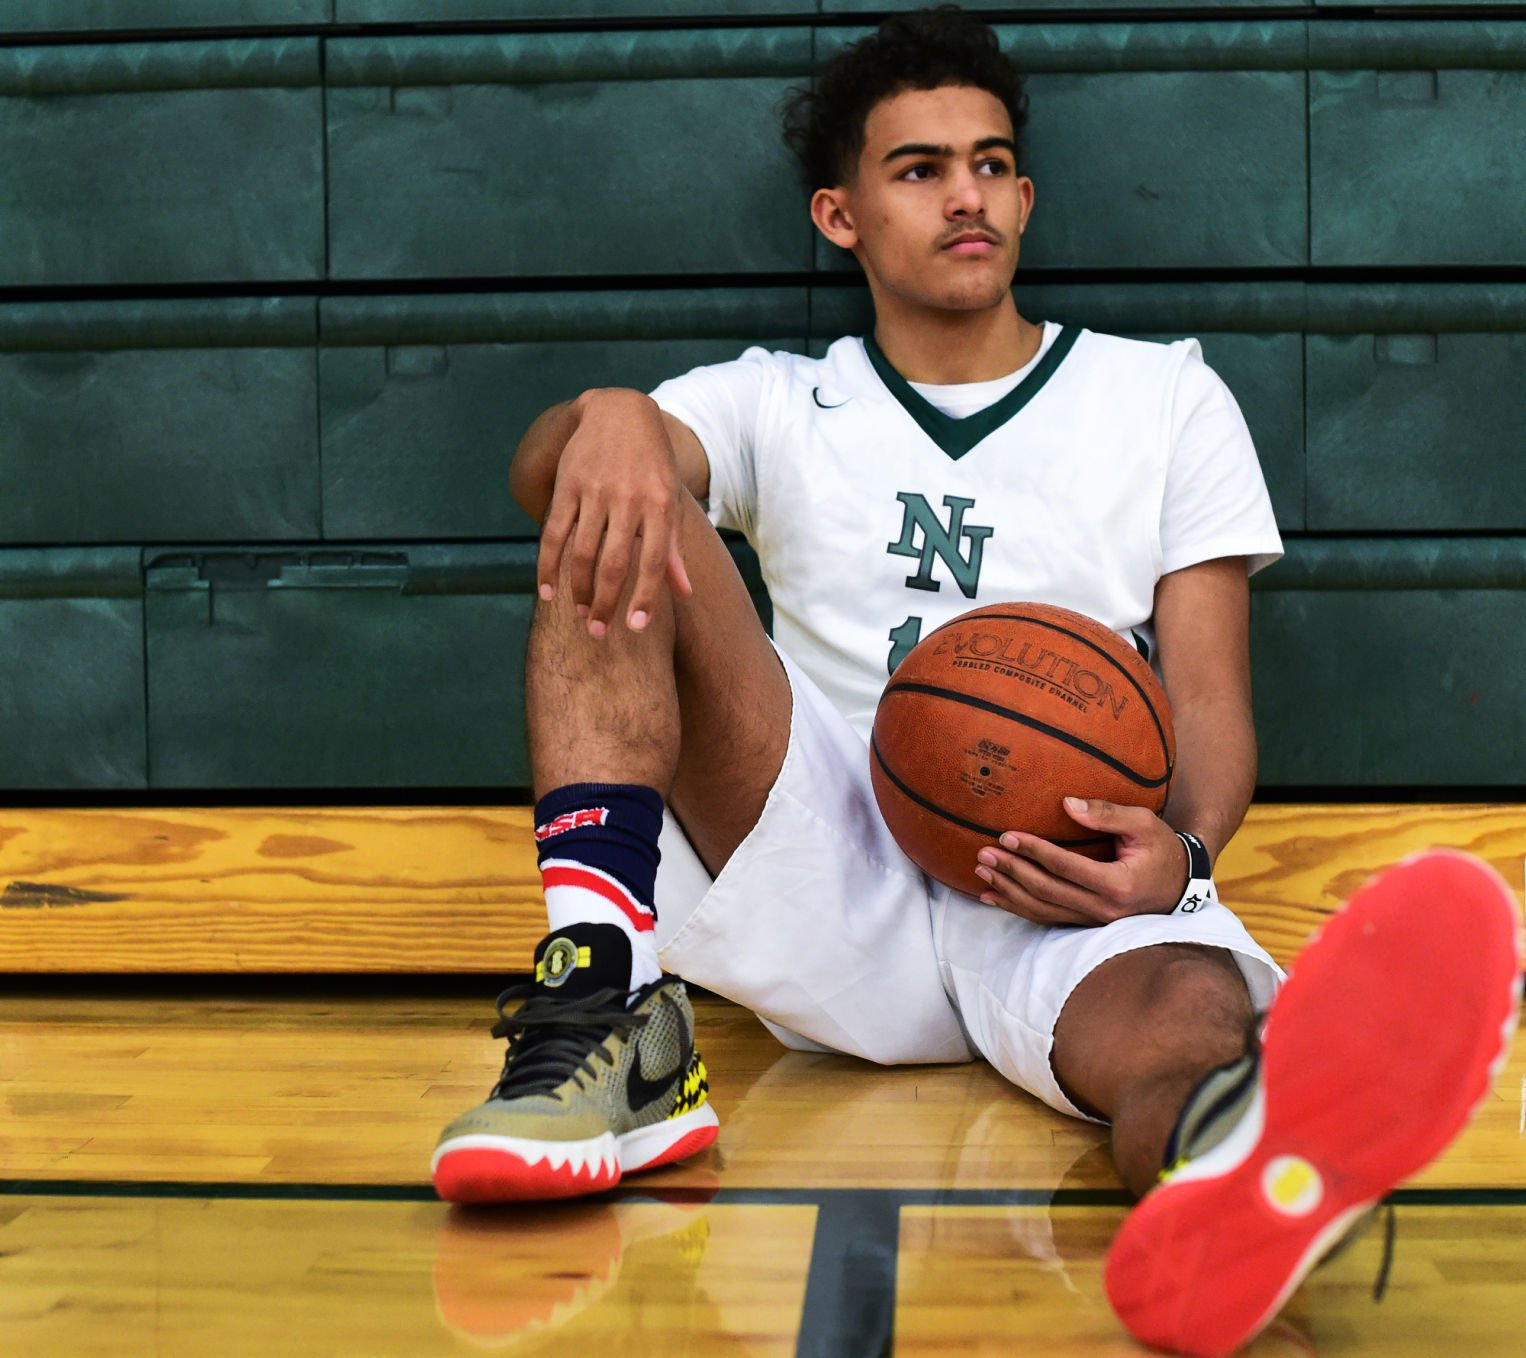 Norman prep PG Trae Young announces he'll play for Oklahoma